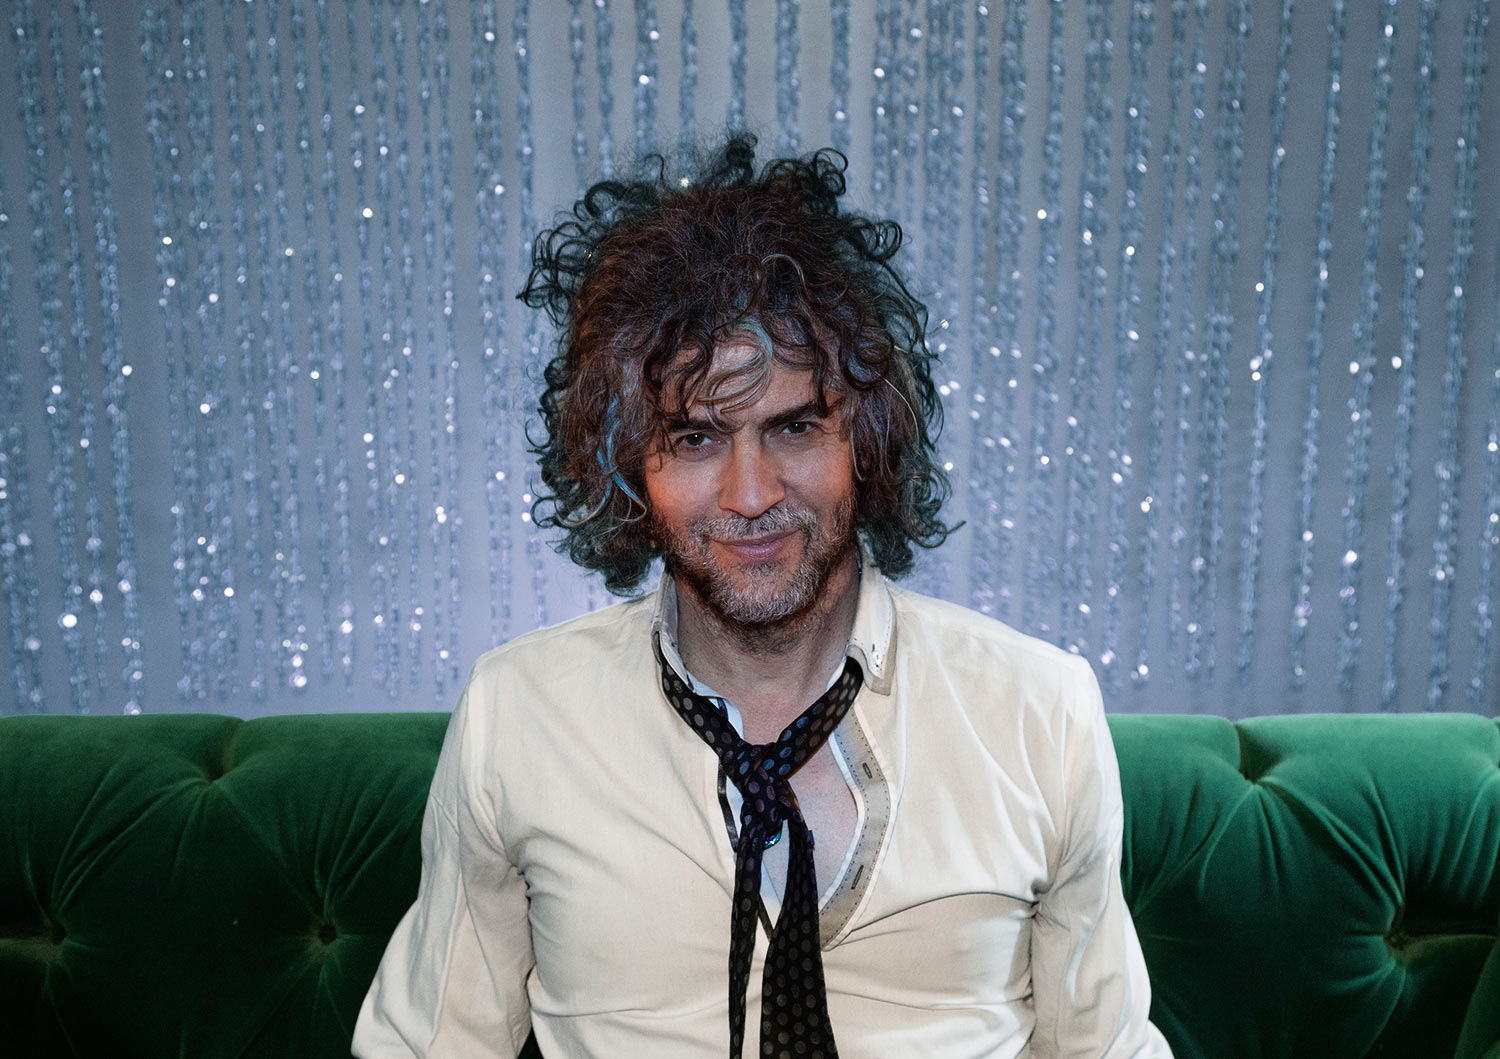 WAYNE COYNE - THE FLAMING LIPS